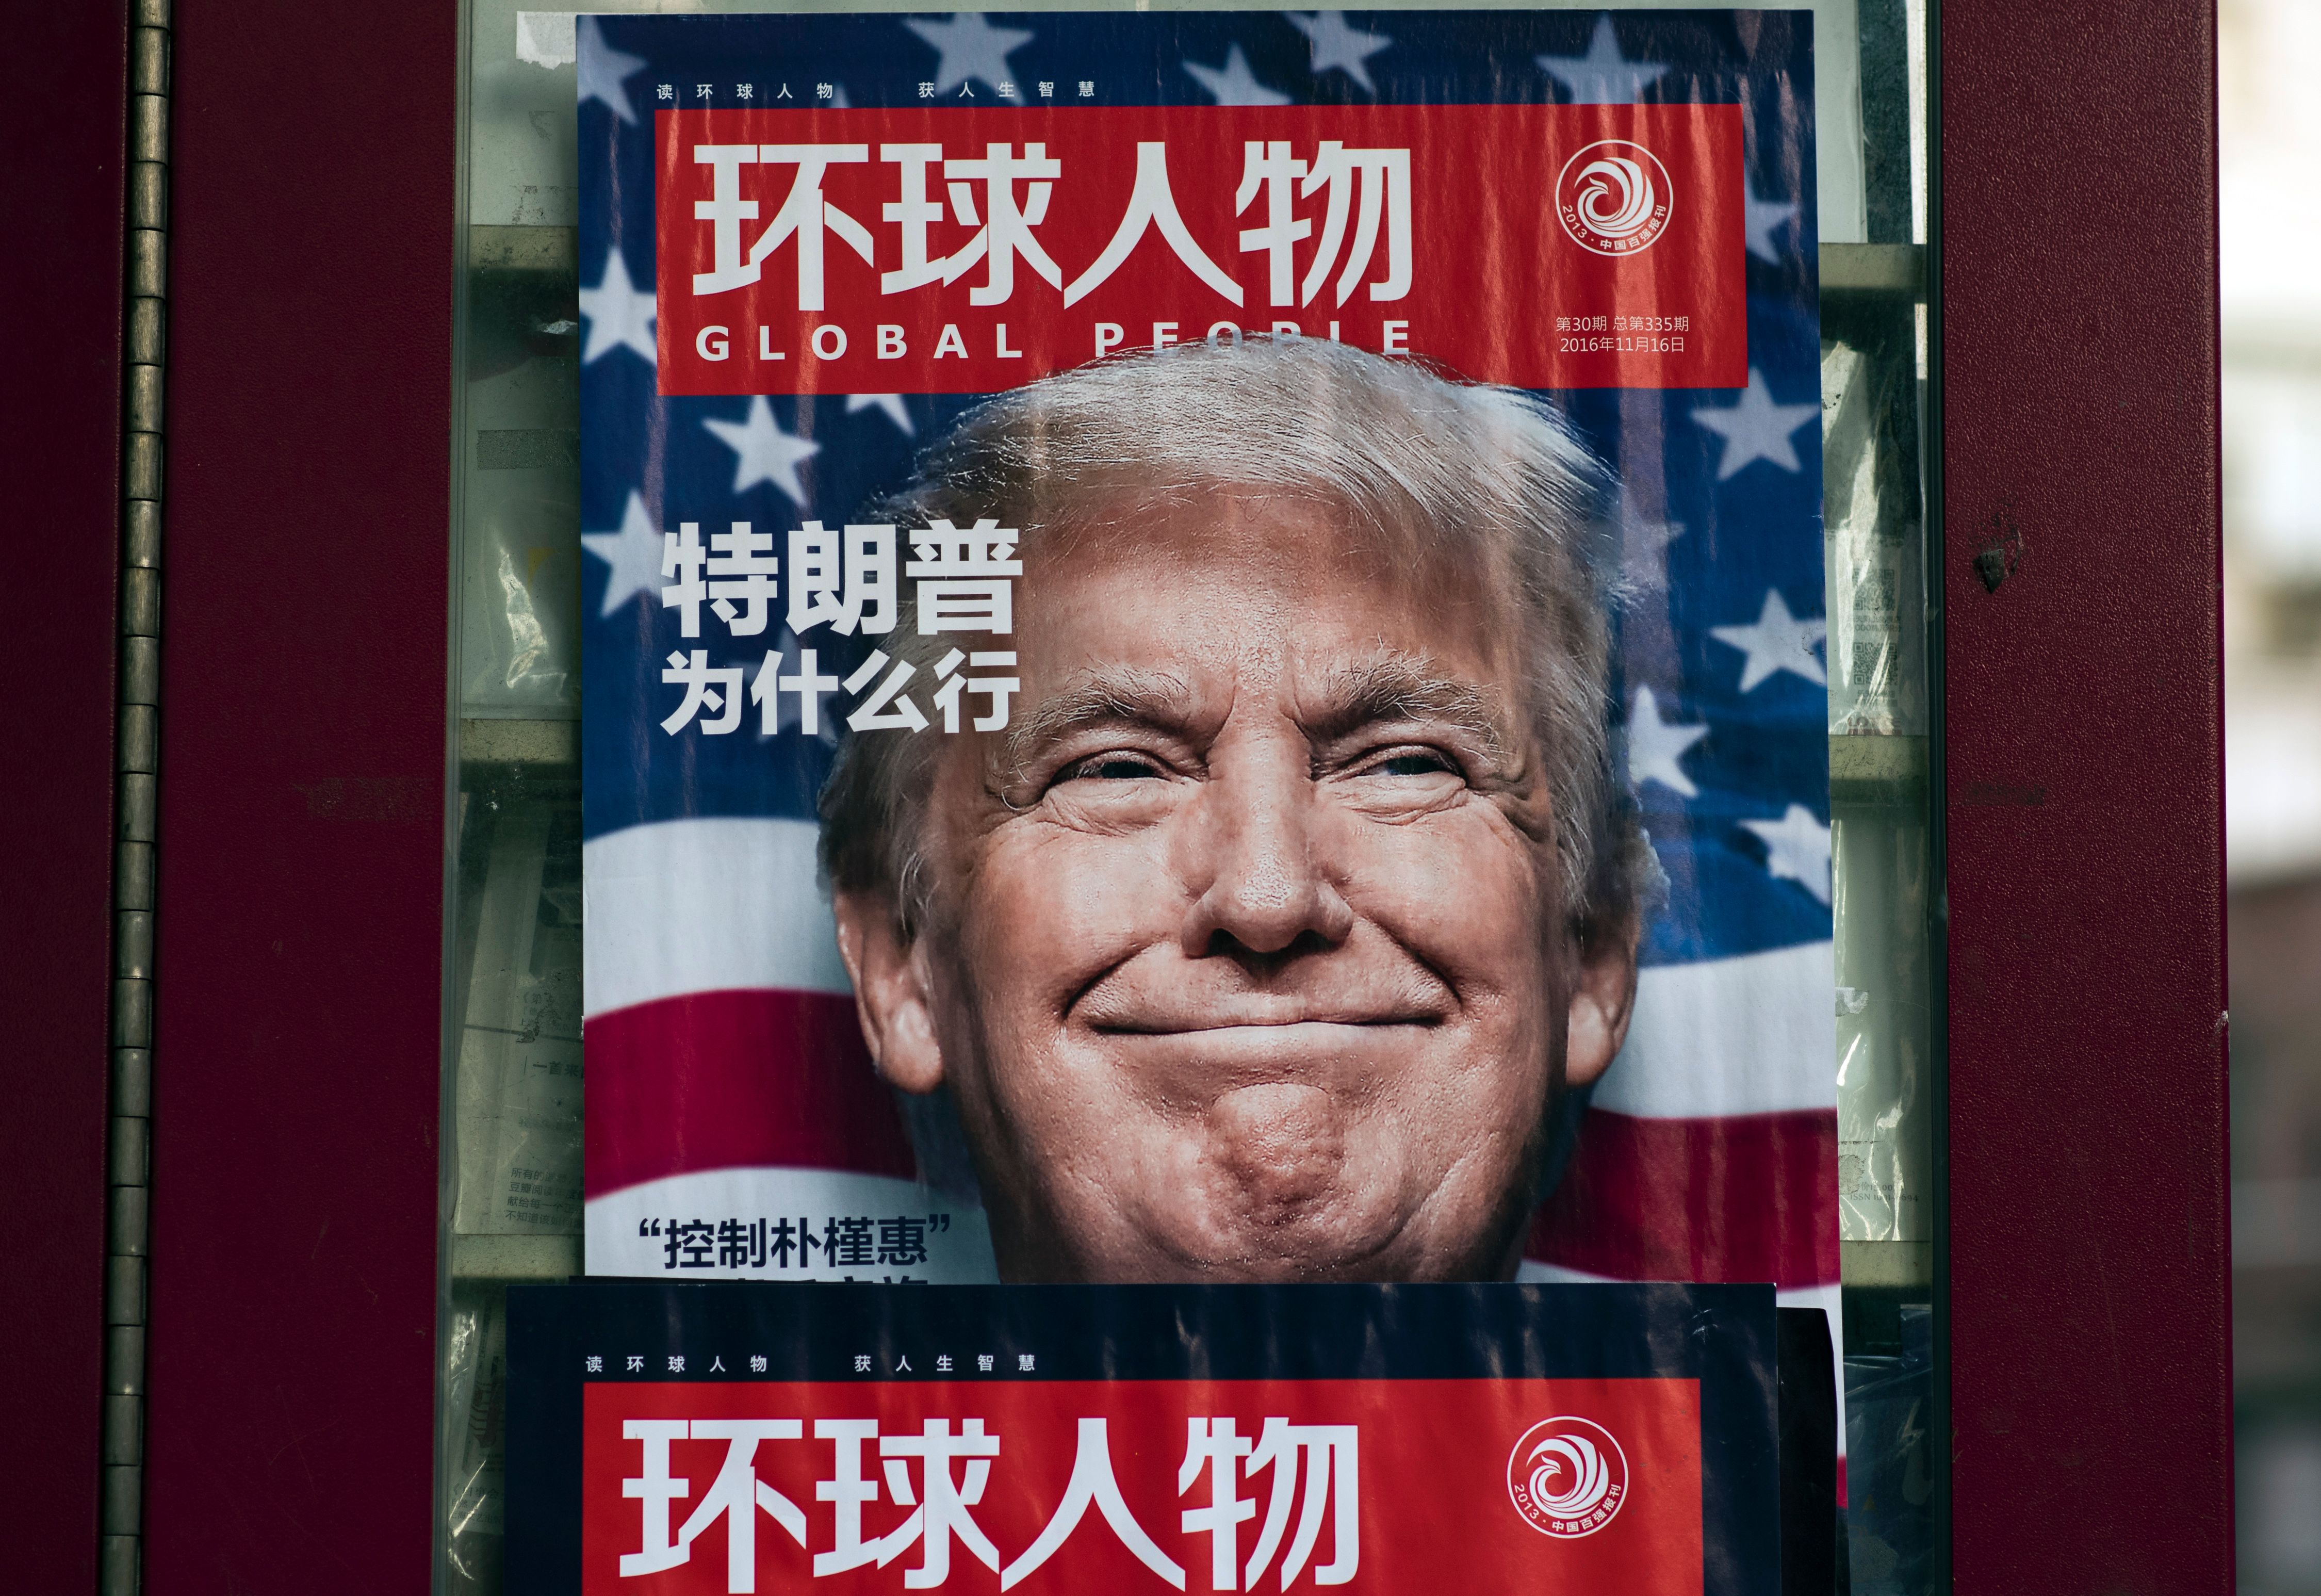 An advertisement for a magazine featuring U.S. President-elect Donald Trump on the cover at a news stand in Shanghai on December 14, 2016.